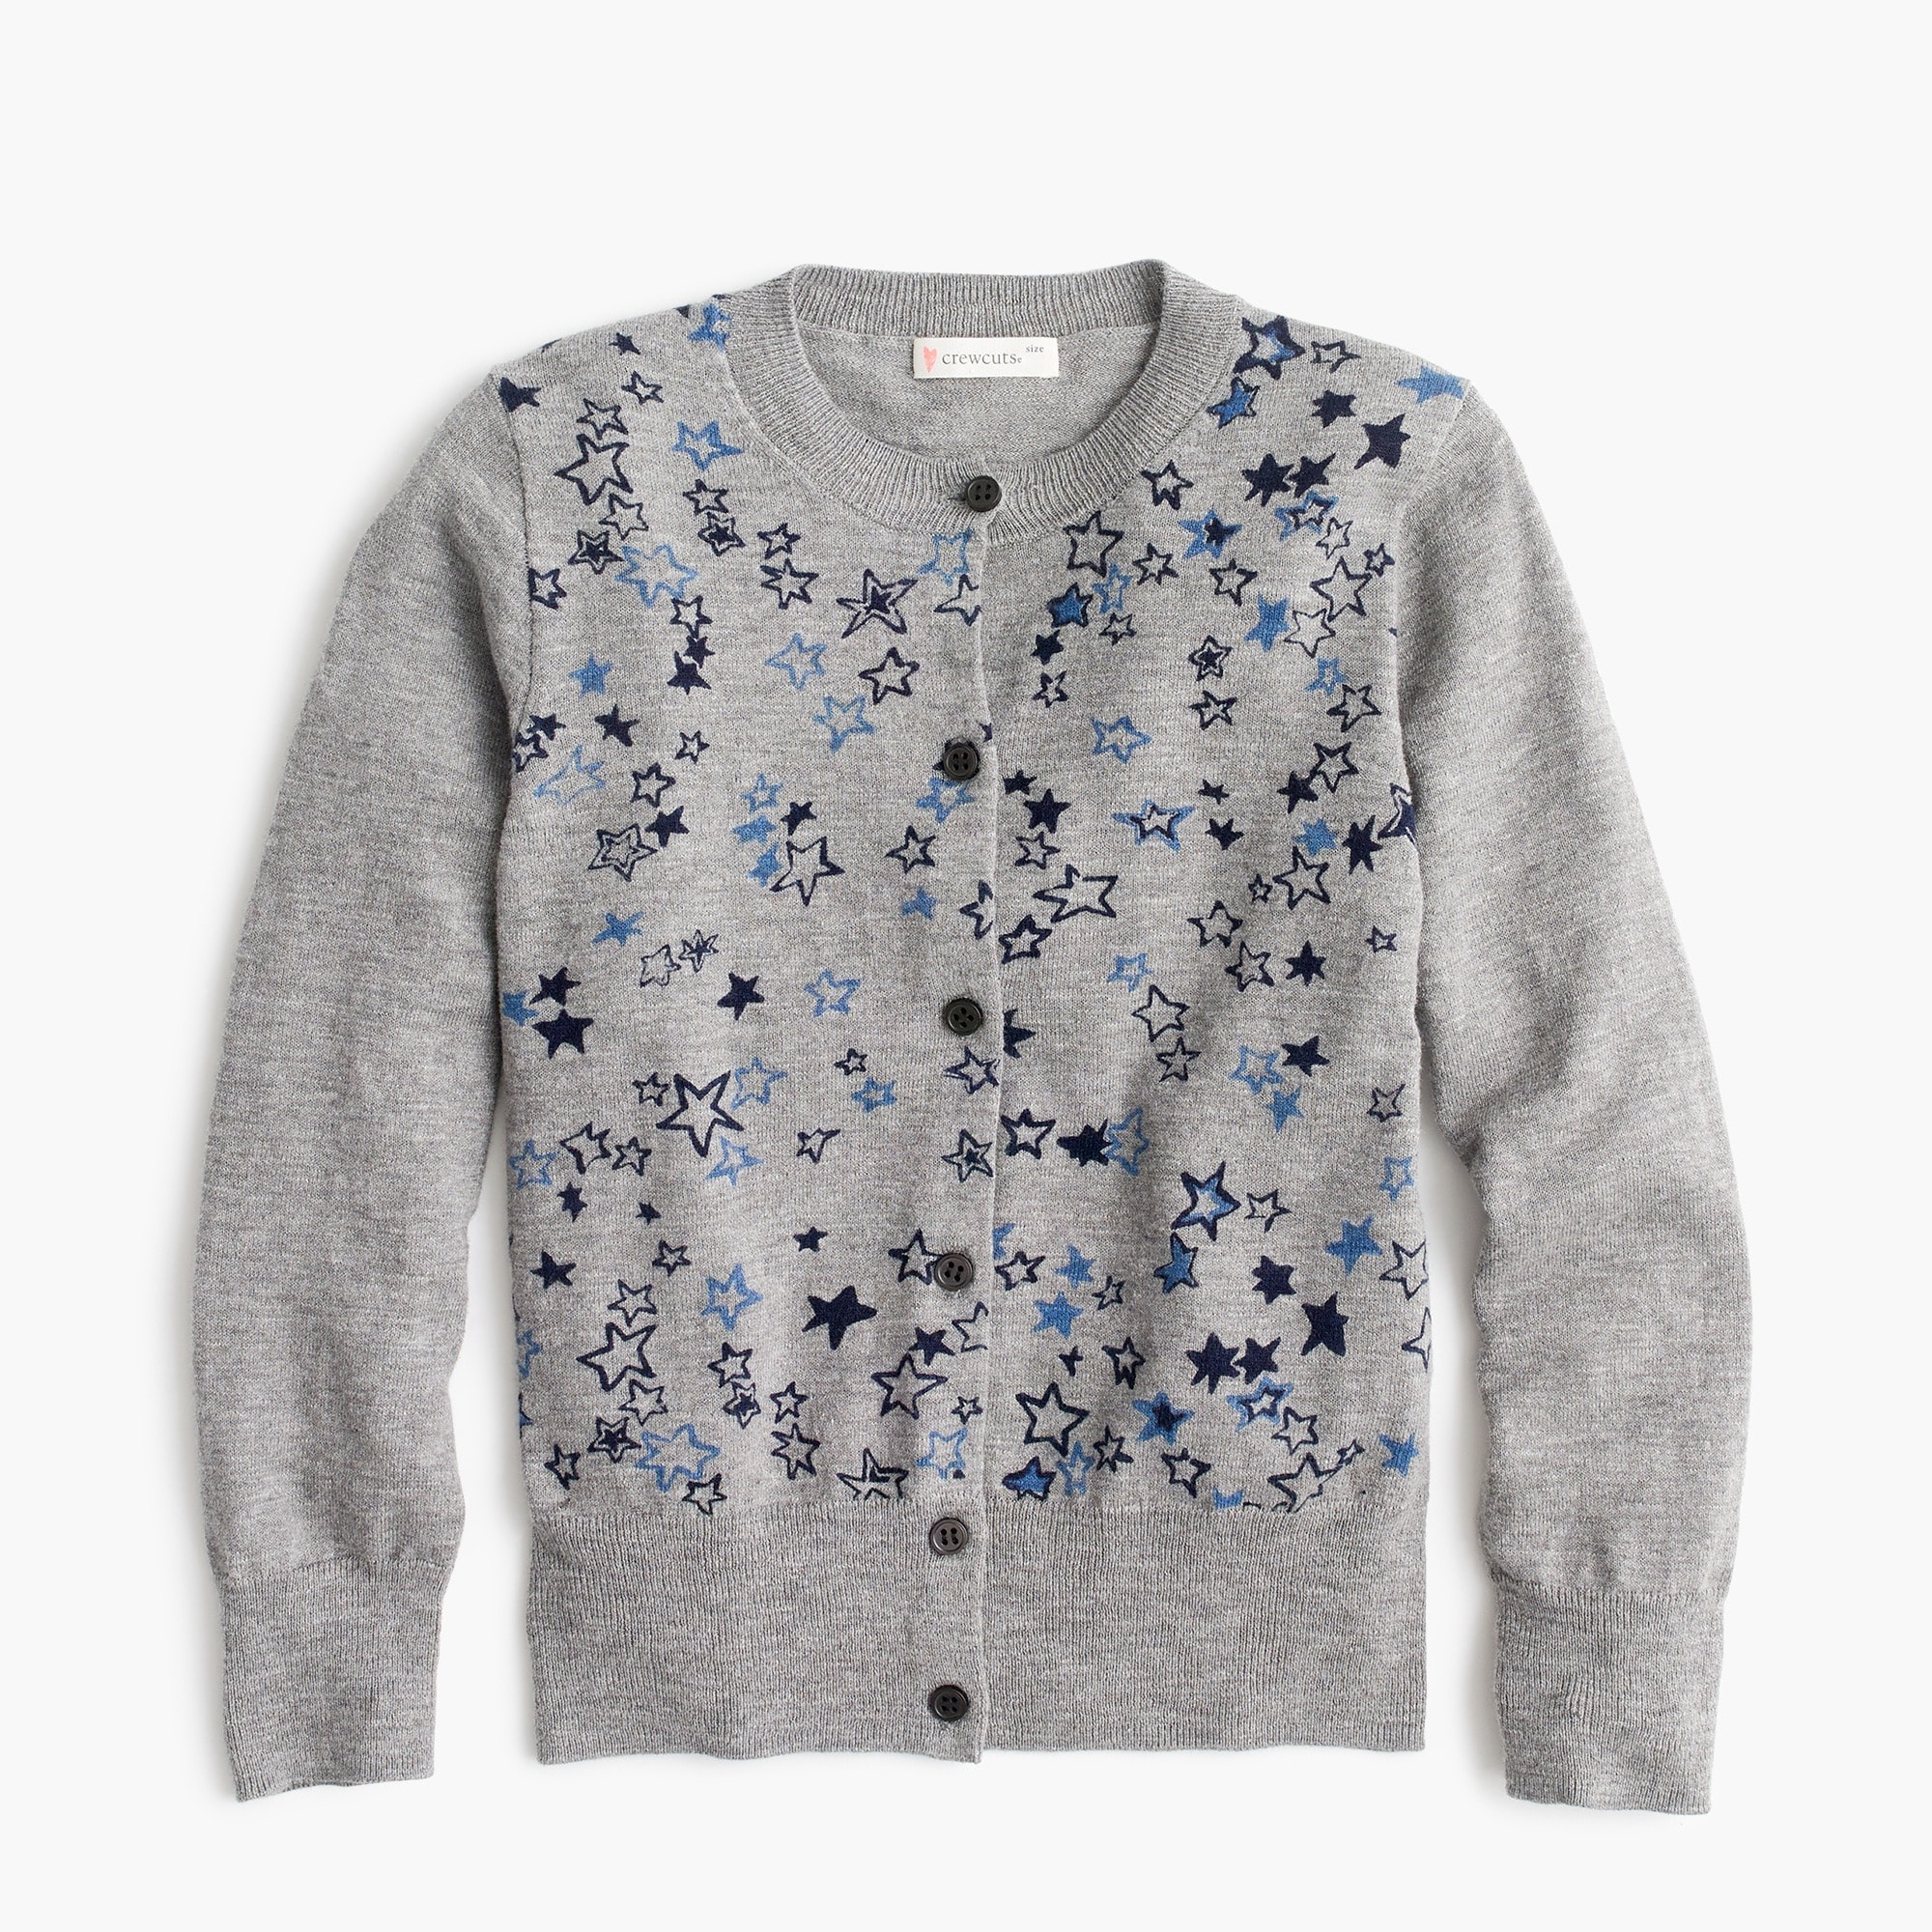 Girls' star-covered cardigan sweater